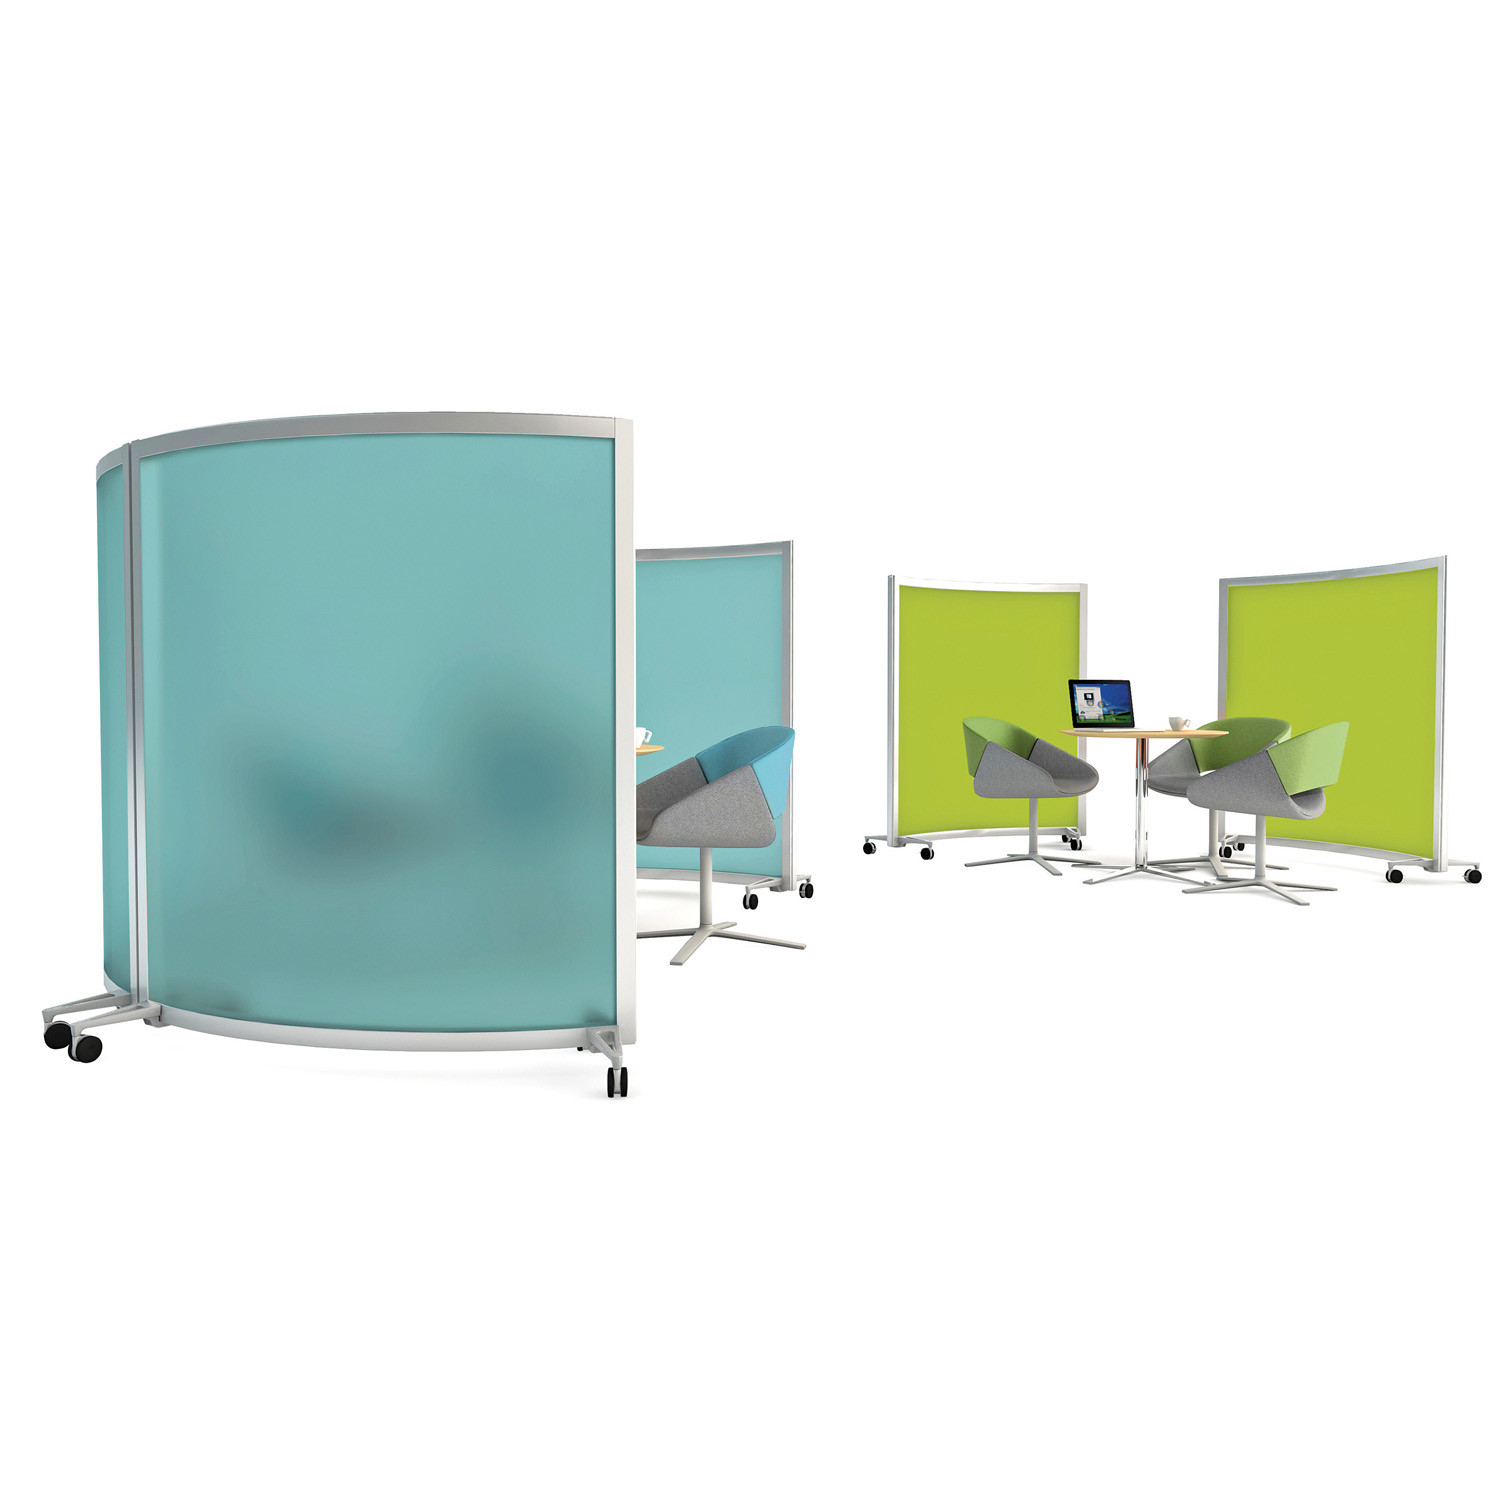 Acrylic and upholstered curved screens